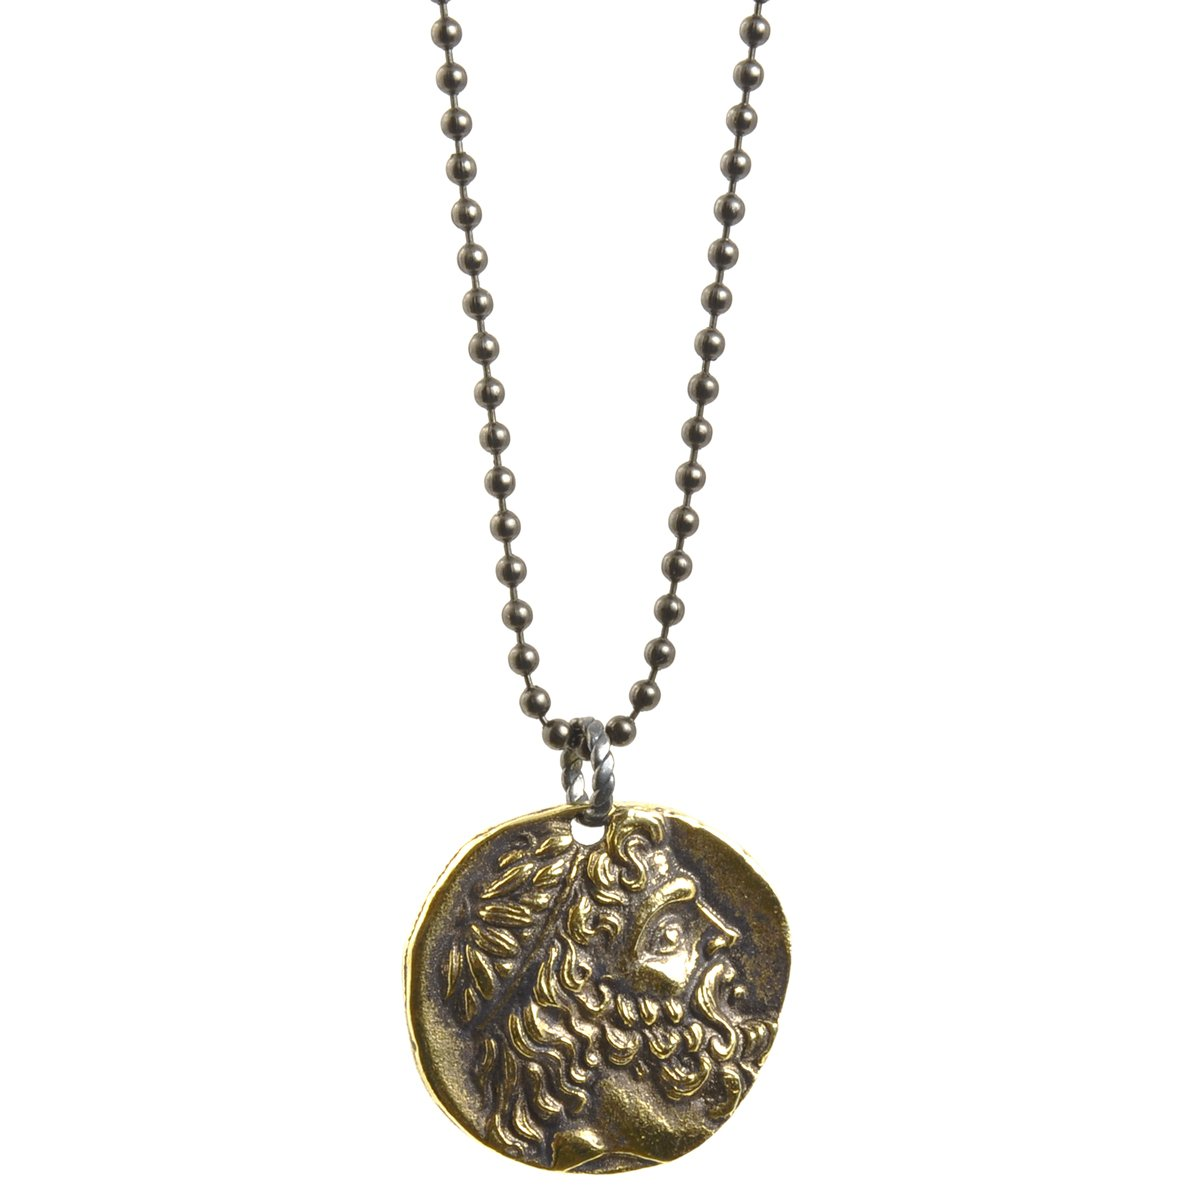 Finished Jewelry-Simple-Antique Gold Greek Coin Ball Chain Necklace